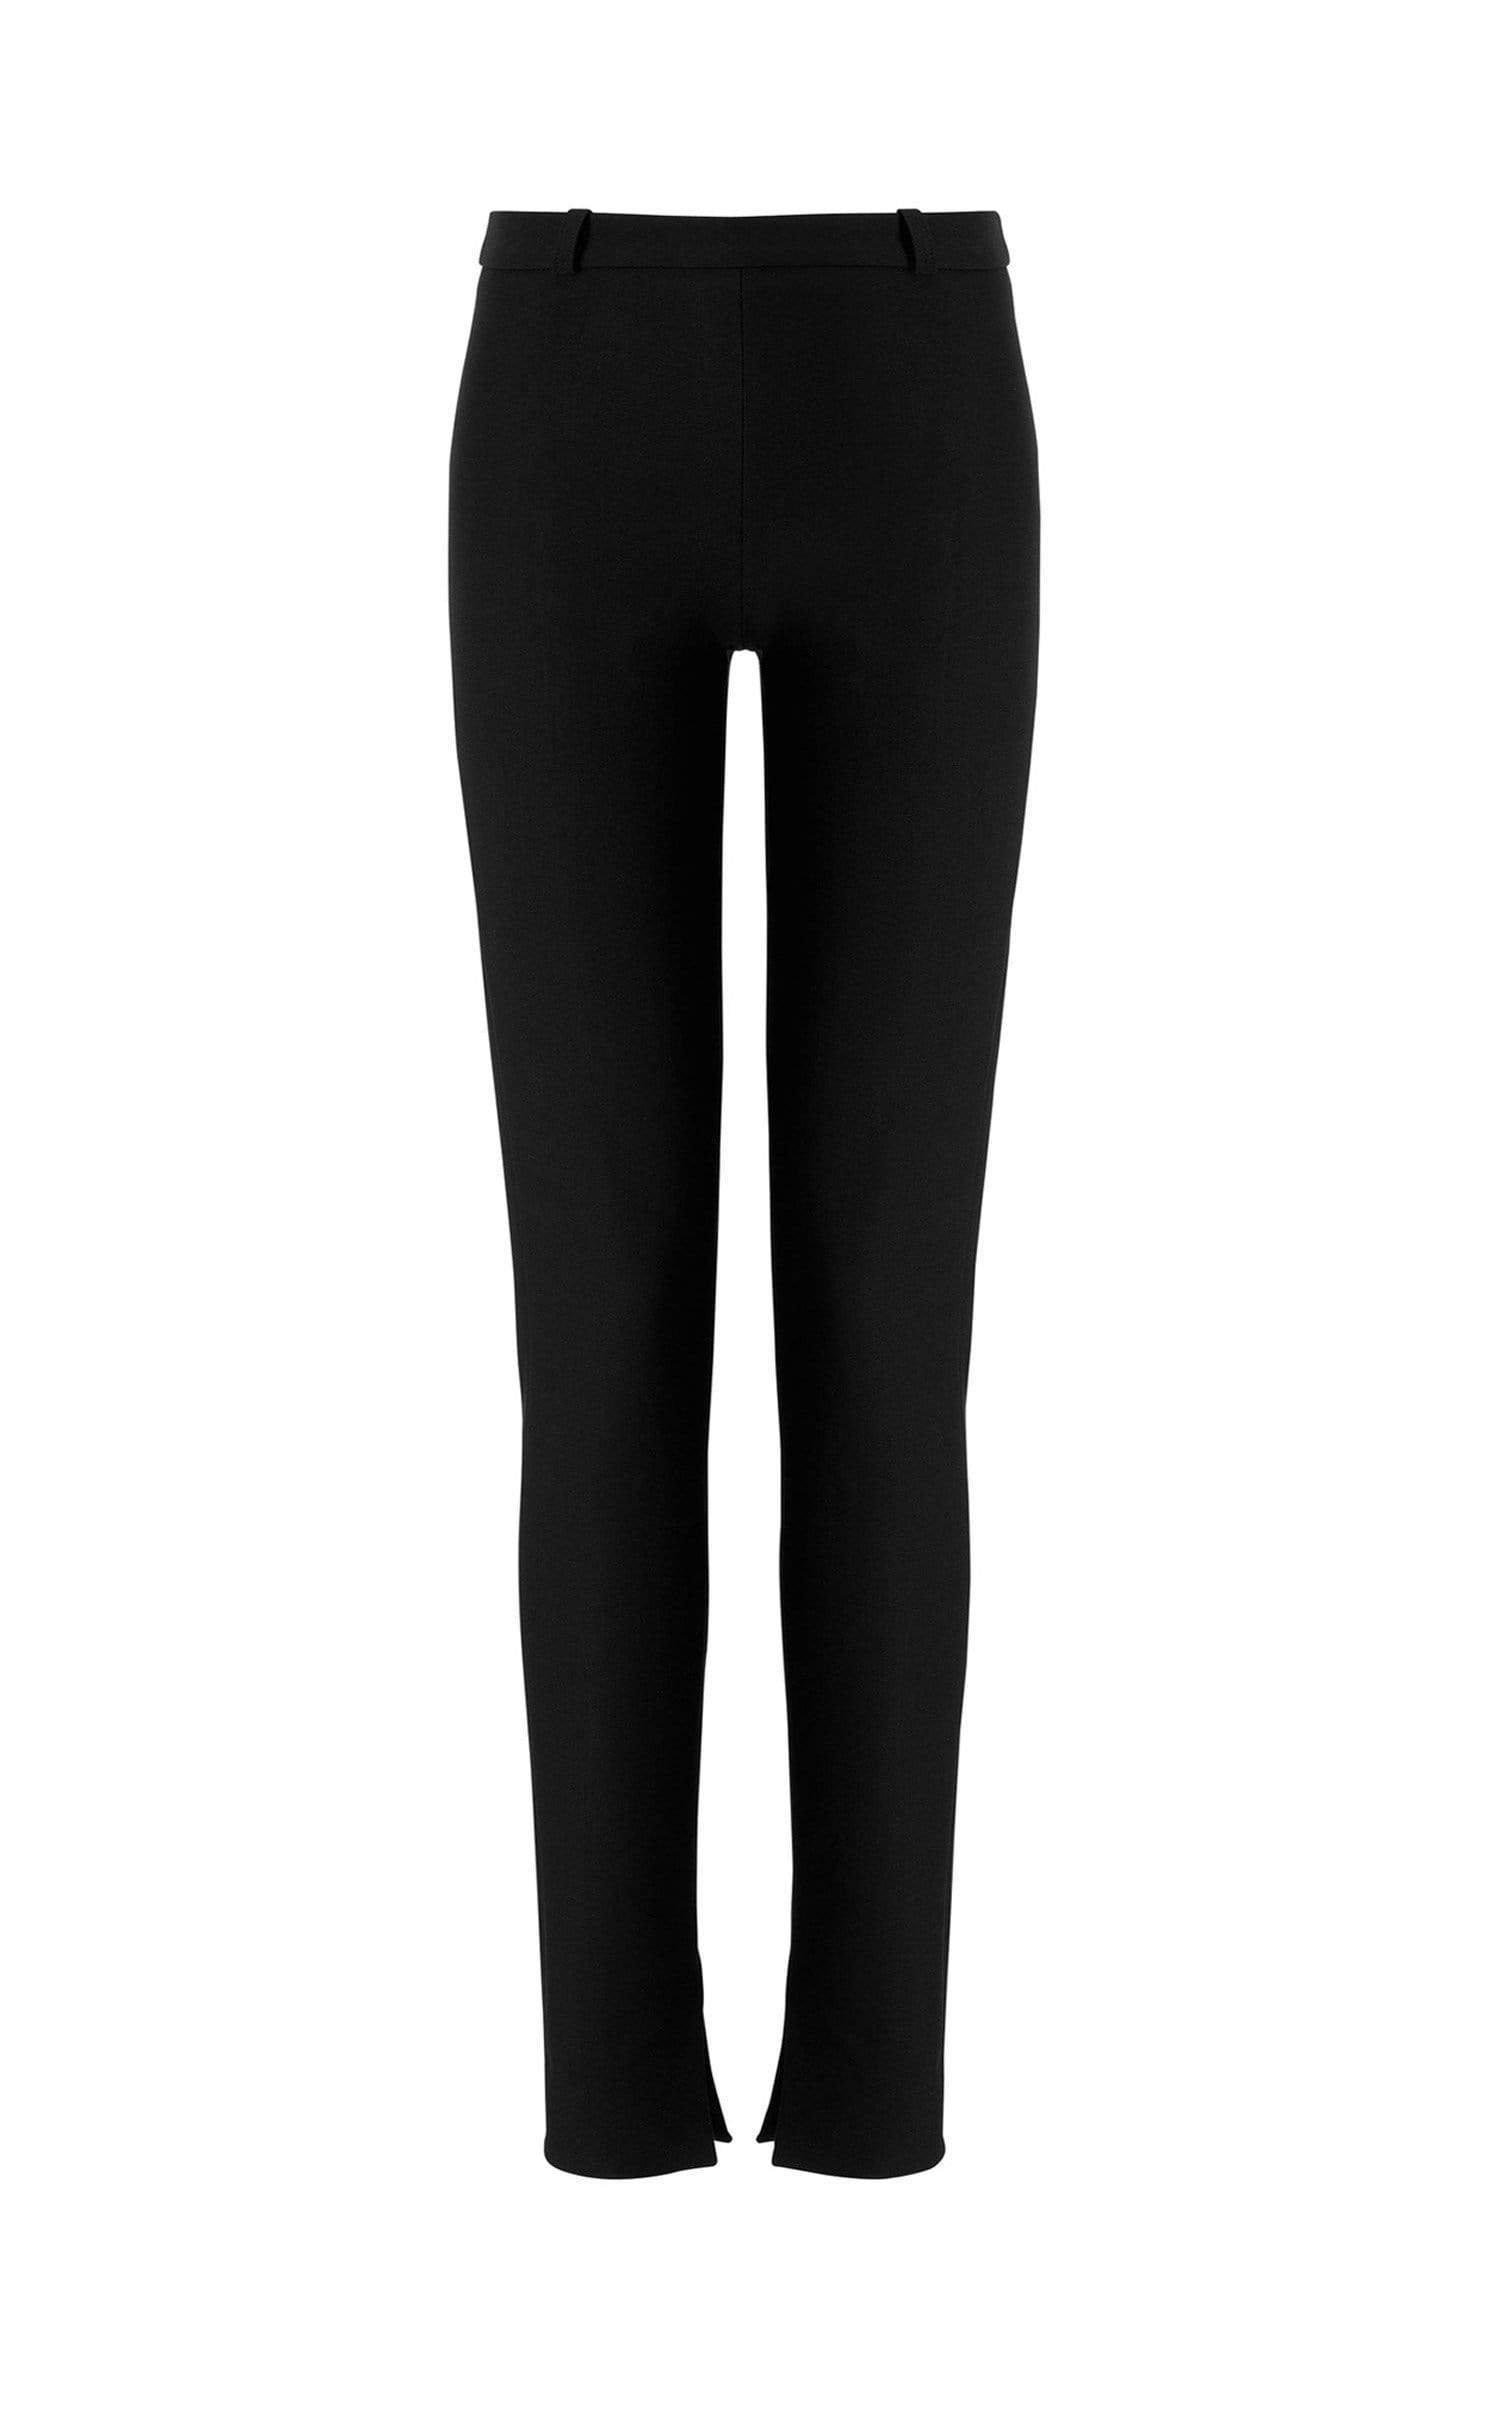 Mortimer Trousers In Black from Roland Mouret